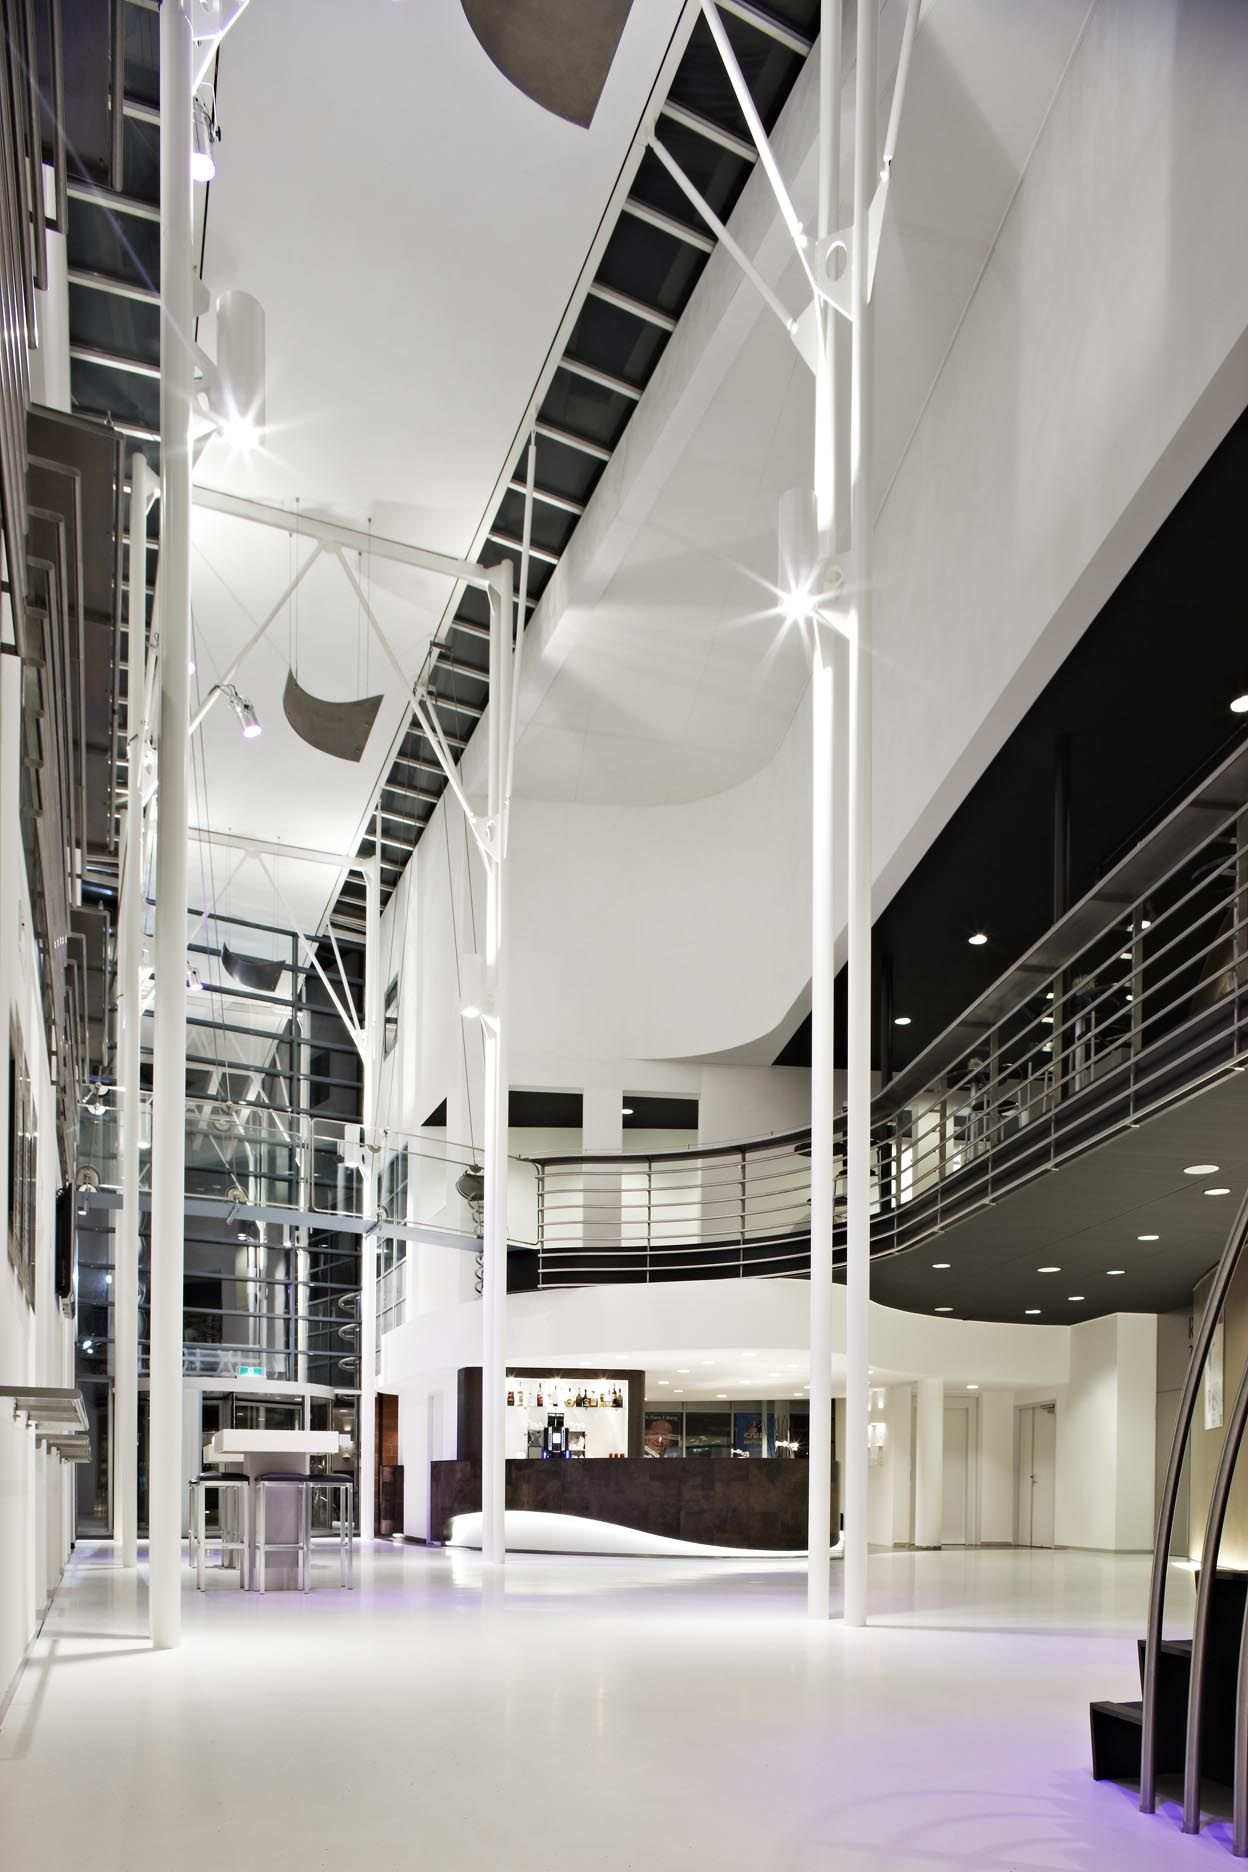 Waalwijk, September 2010. Conversion and refurbishment of the entrance, lobby and theatre by M +R interior Architecture.